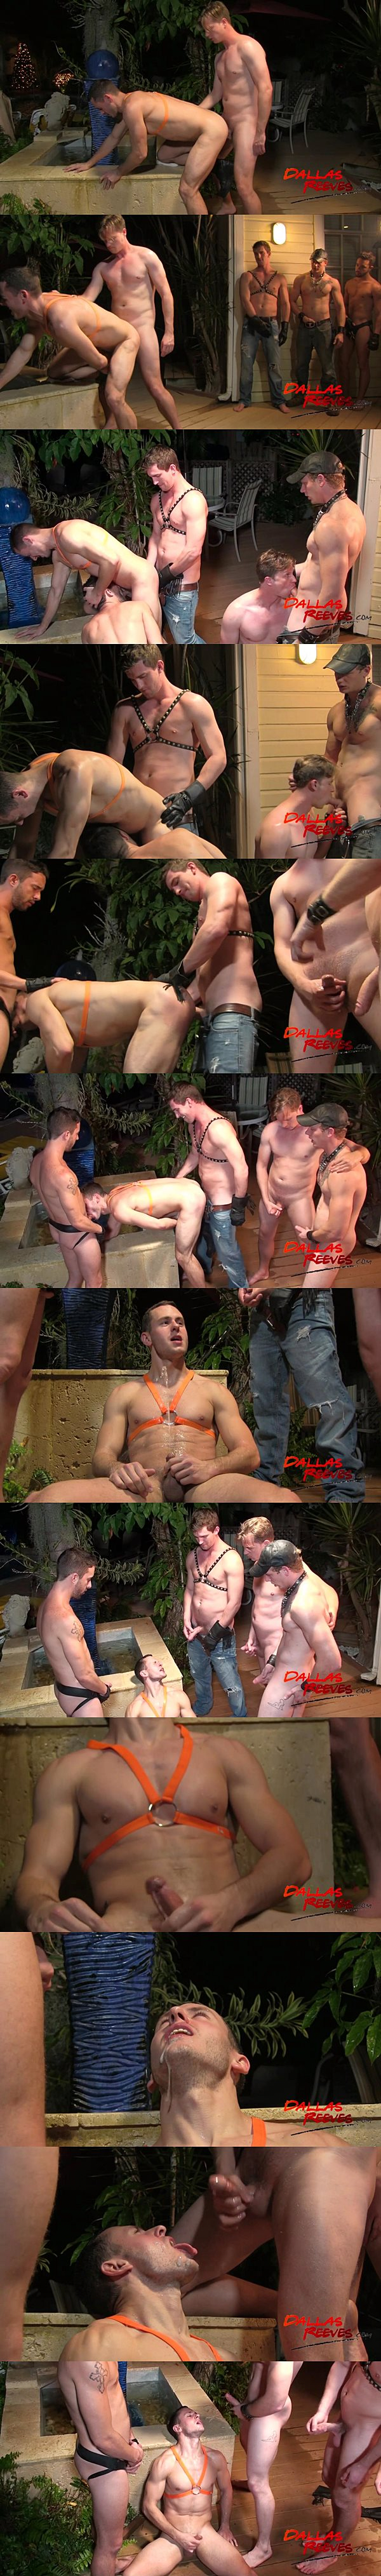 Dallas Reeves, Johnny Forza, Bryan Cavallo and Isaac Hardy bareback and piss on Dalton Pierce in Piss and Boots at Dallasreeves 02